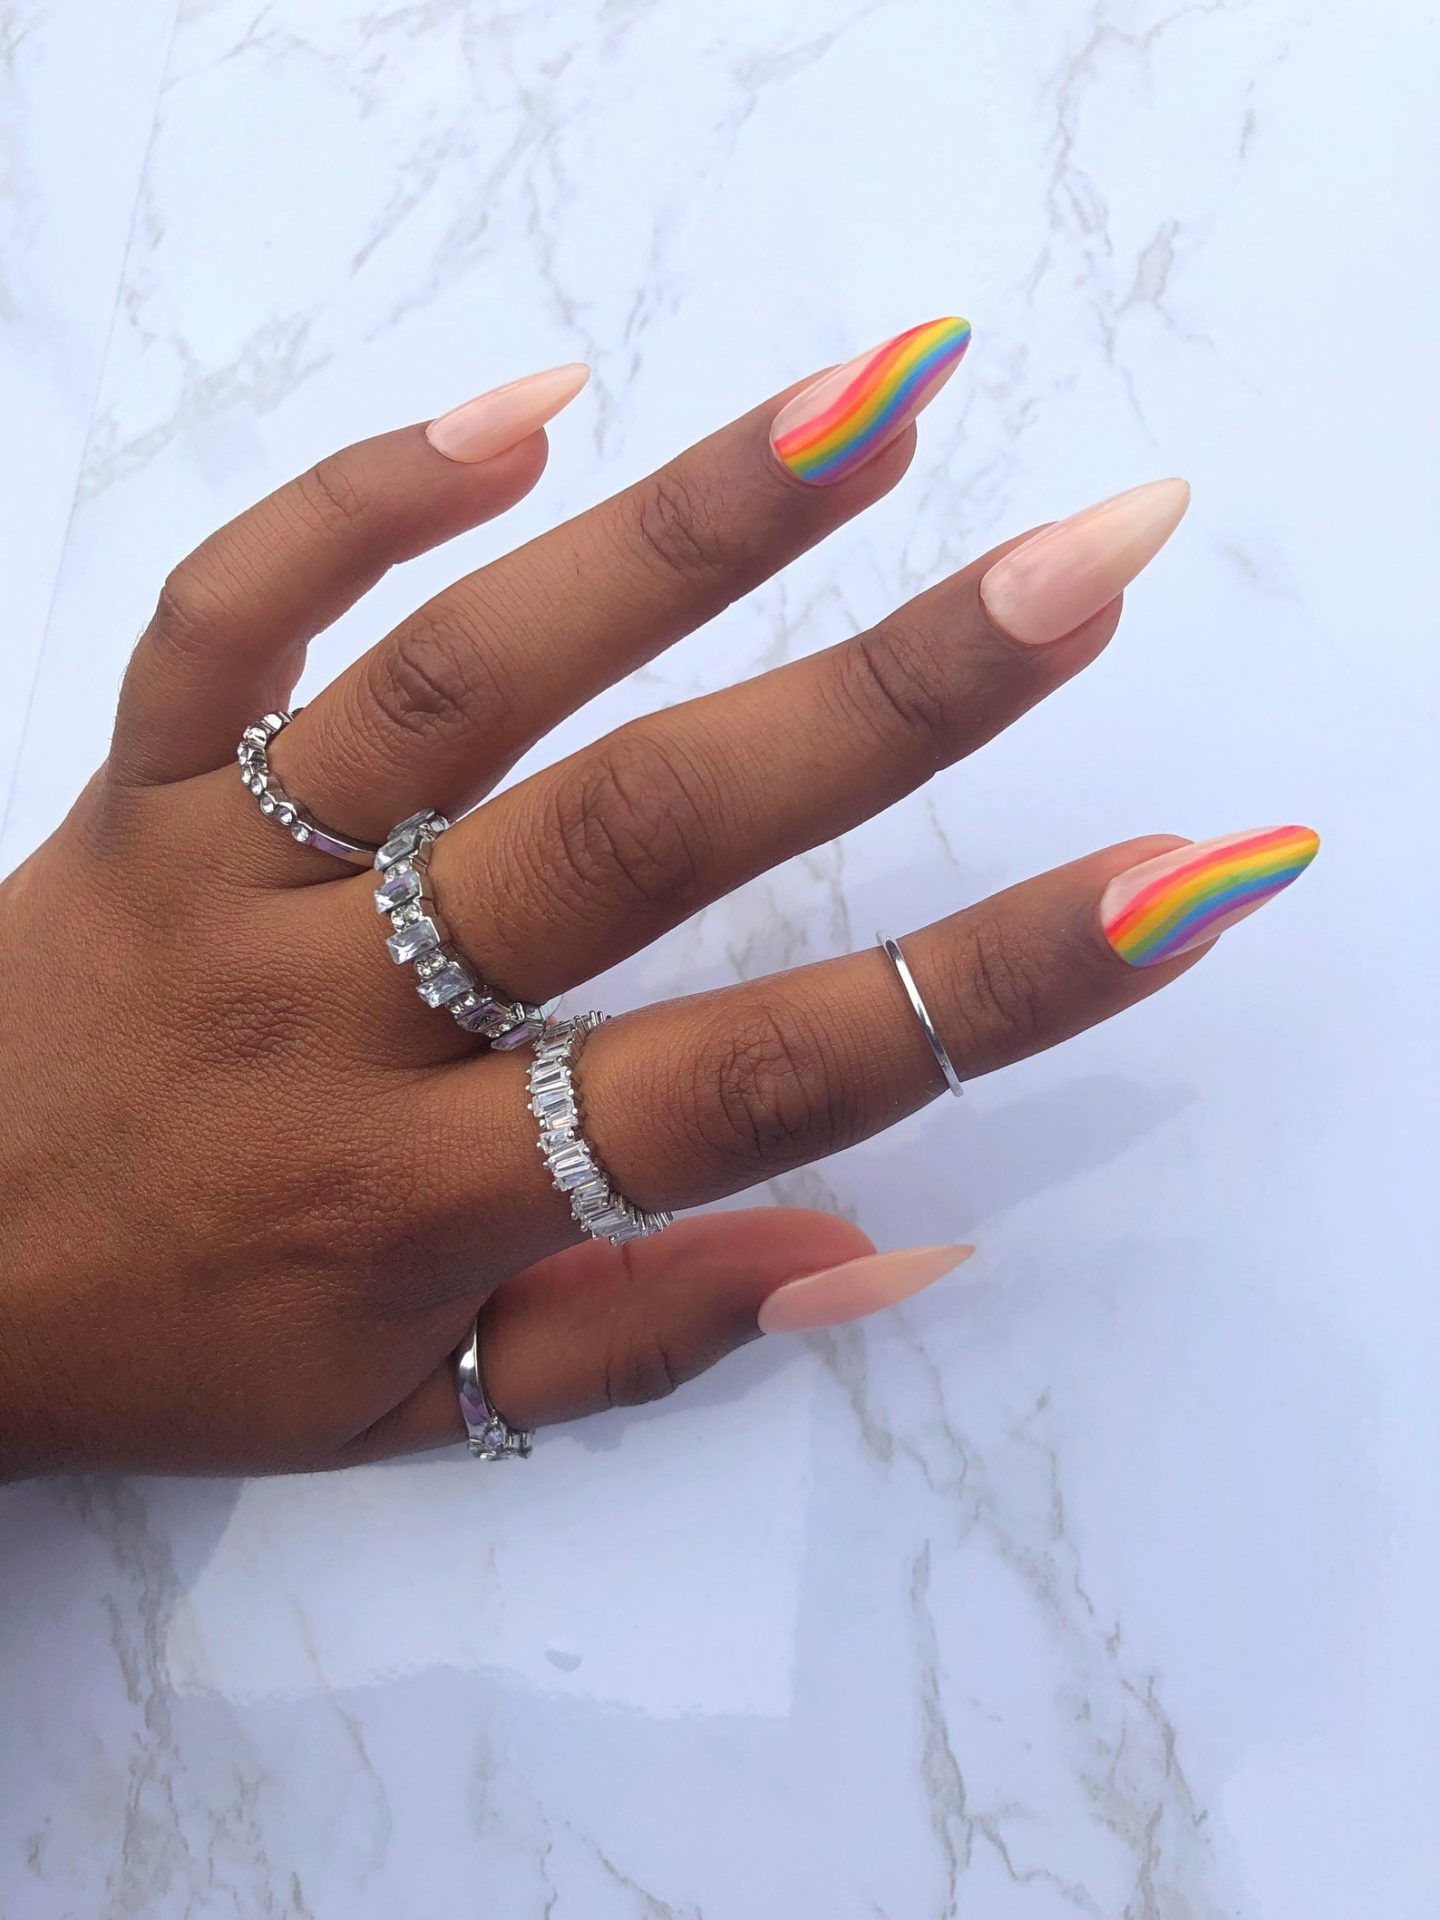 Nude almond nails with rainbow flags